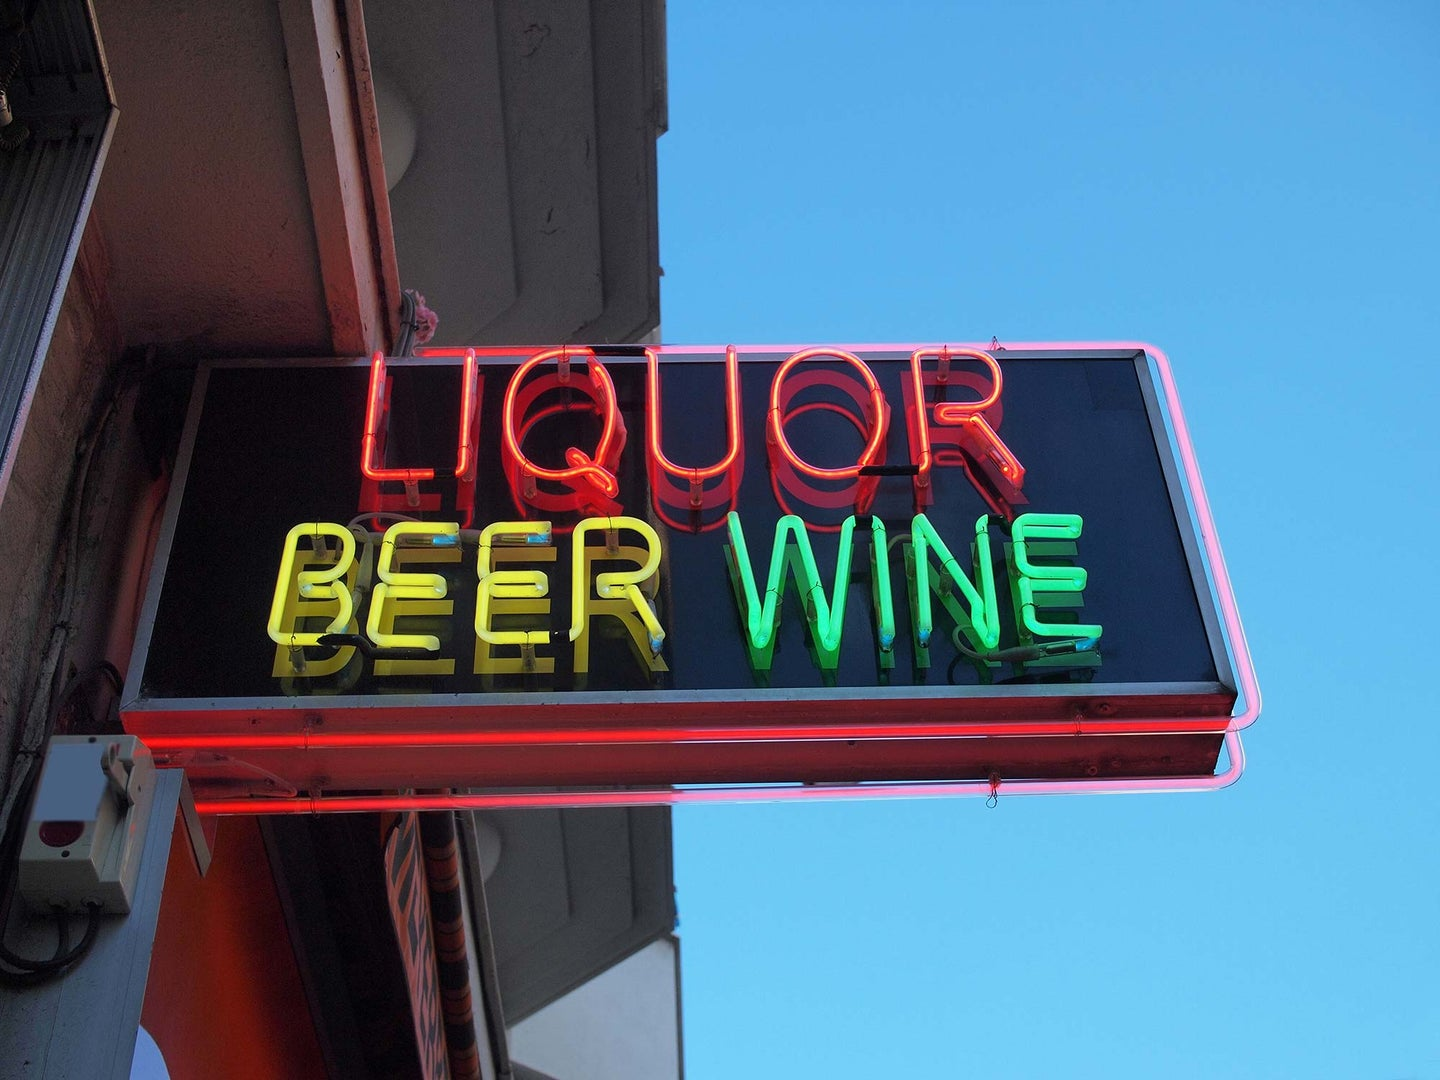 Neon sign advertising liquor, beer, and wine